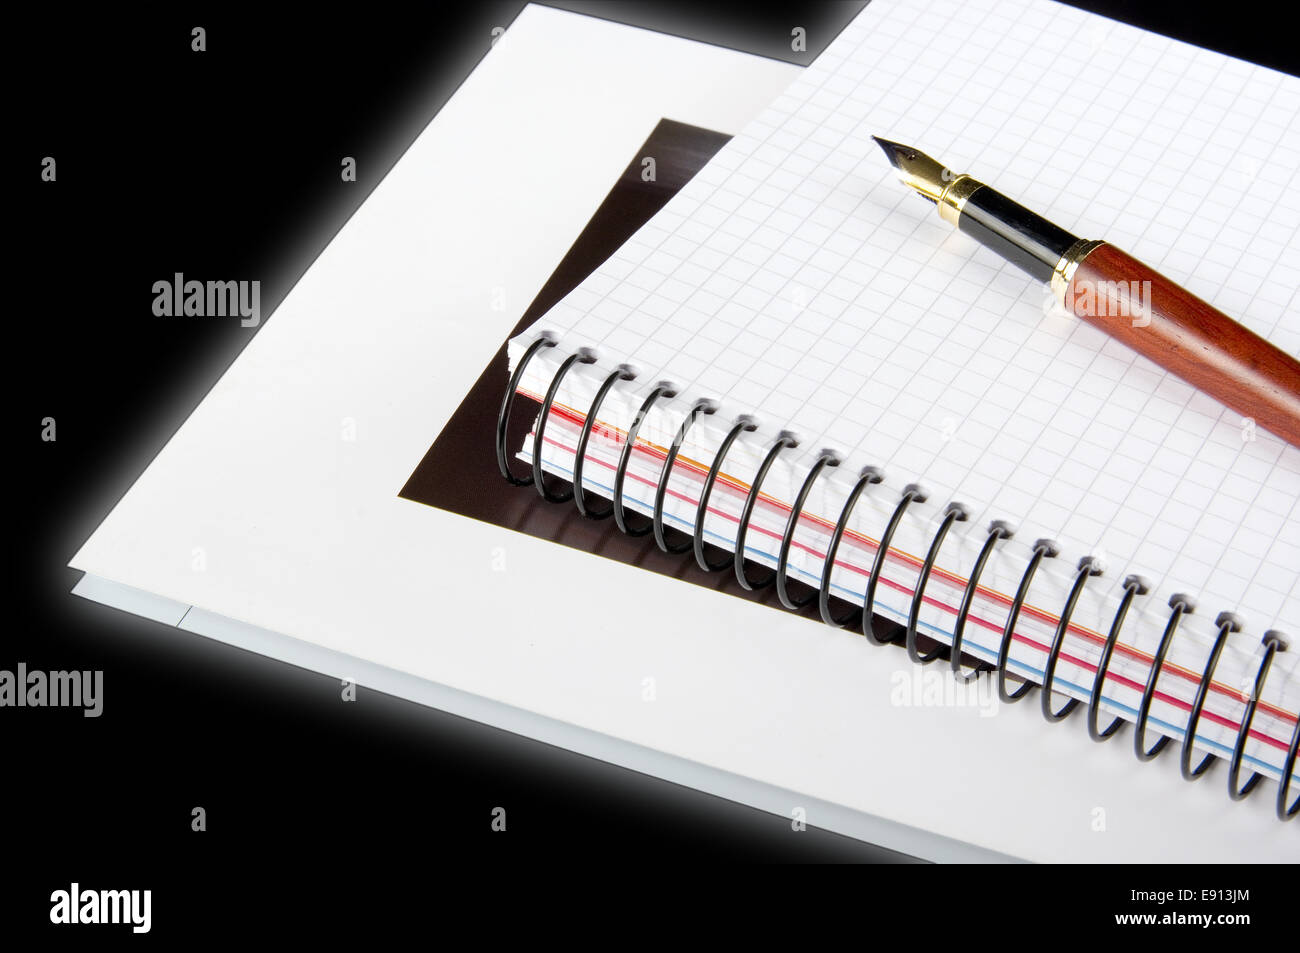 phd dissertation assistance Looking for phd dissertation writing services uk hire a highly qualified and experienced phd writer to get best phd dissertation help uk we are offering first-class phd dissertation writing services and best phd thesis writing services to meet the expectation of your tutor and requirements of your university.